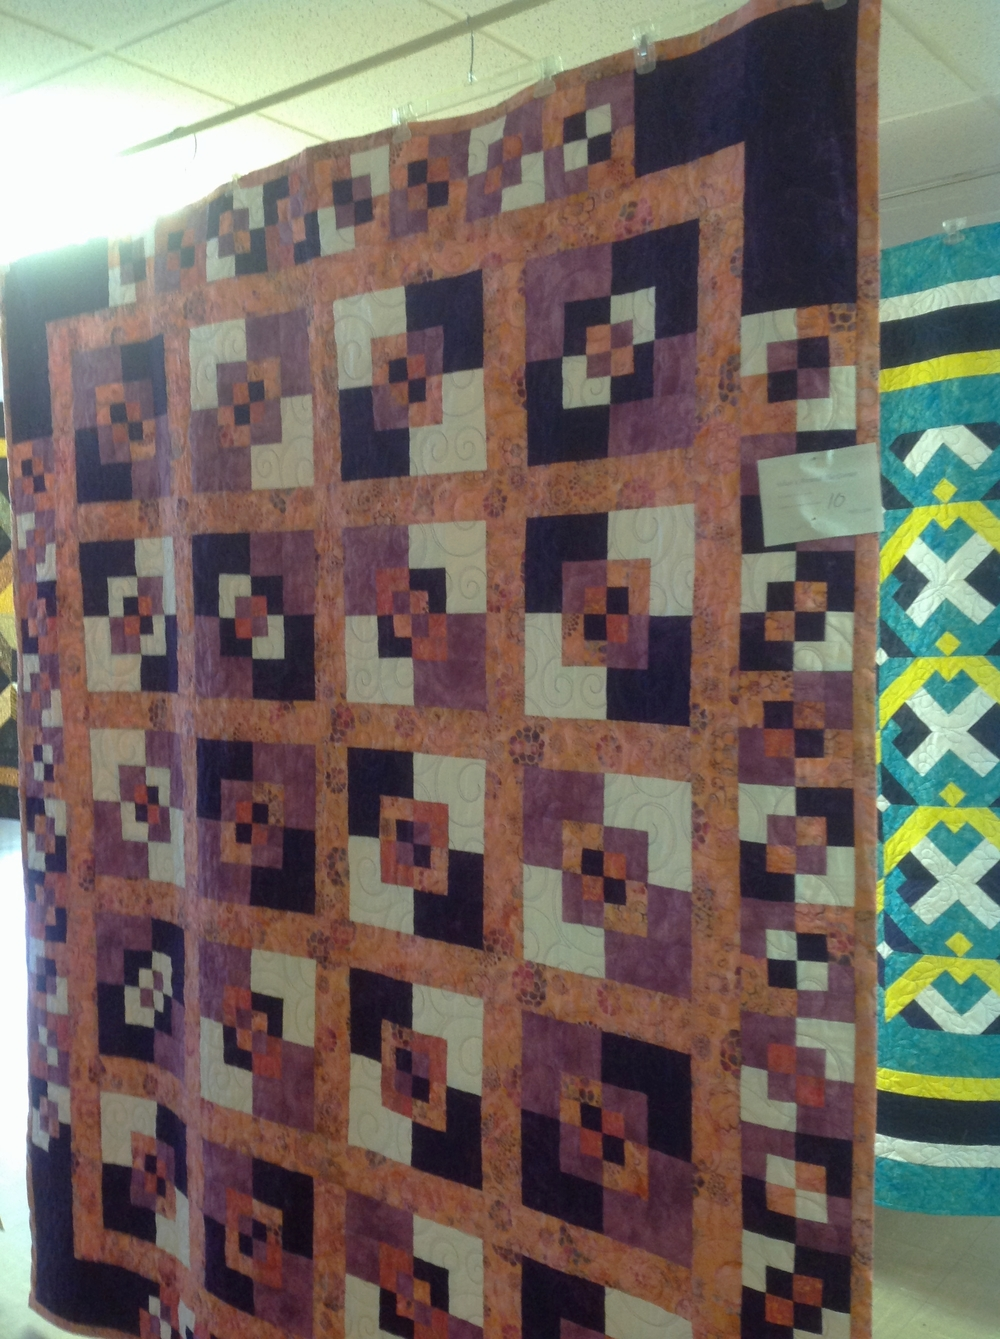 A beautiful example of quilt made from contrasting fabrics in purples and oranges.